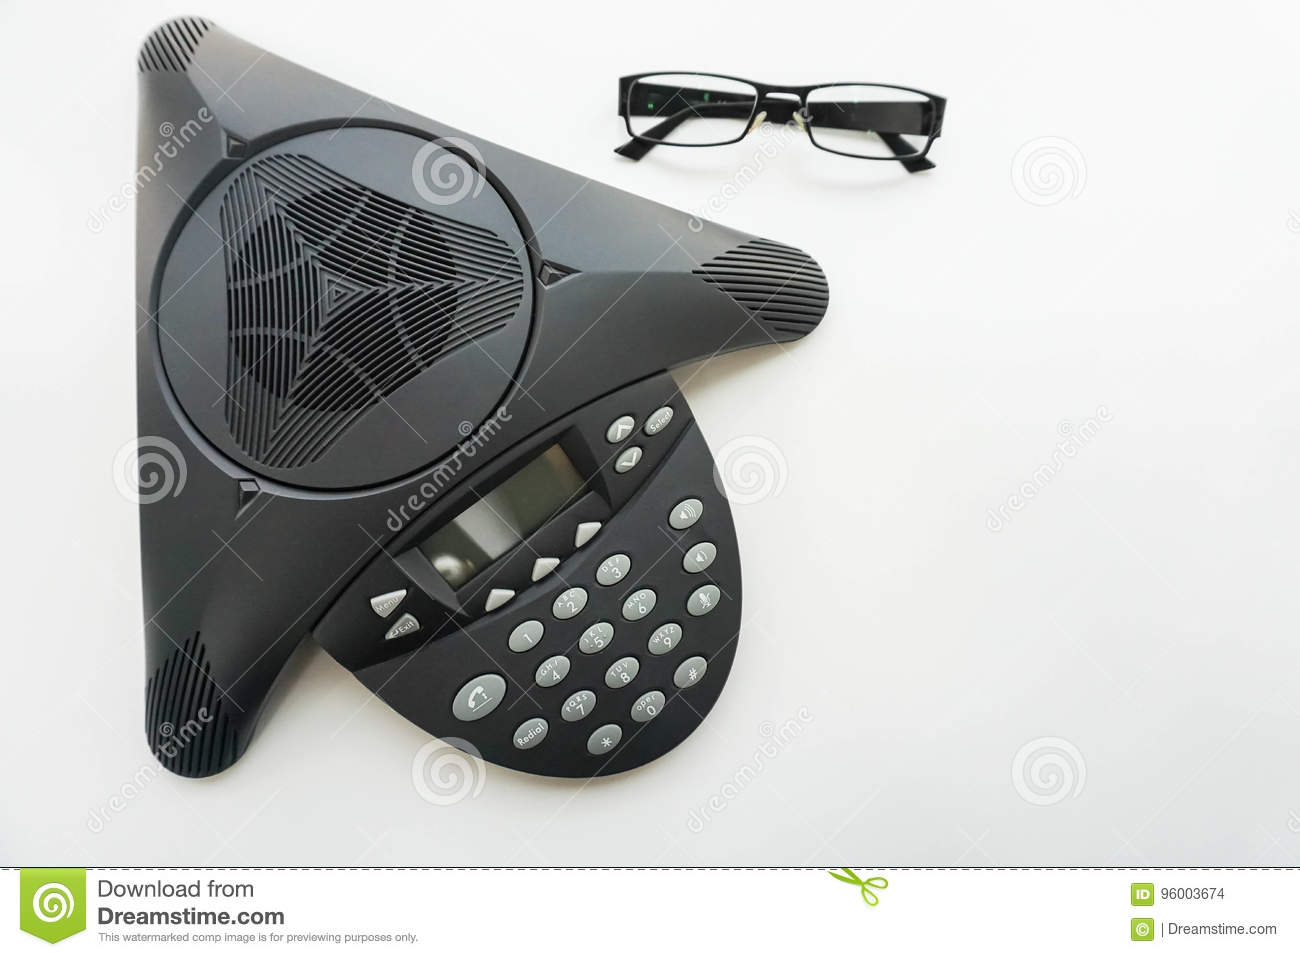 Isolated Top View Of Voip Ip Conference Phone With Eye Glasses On